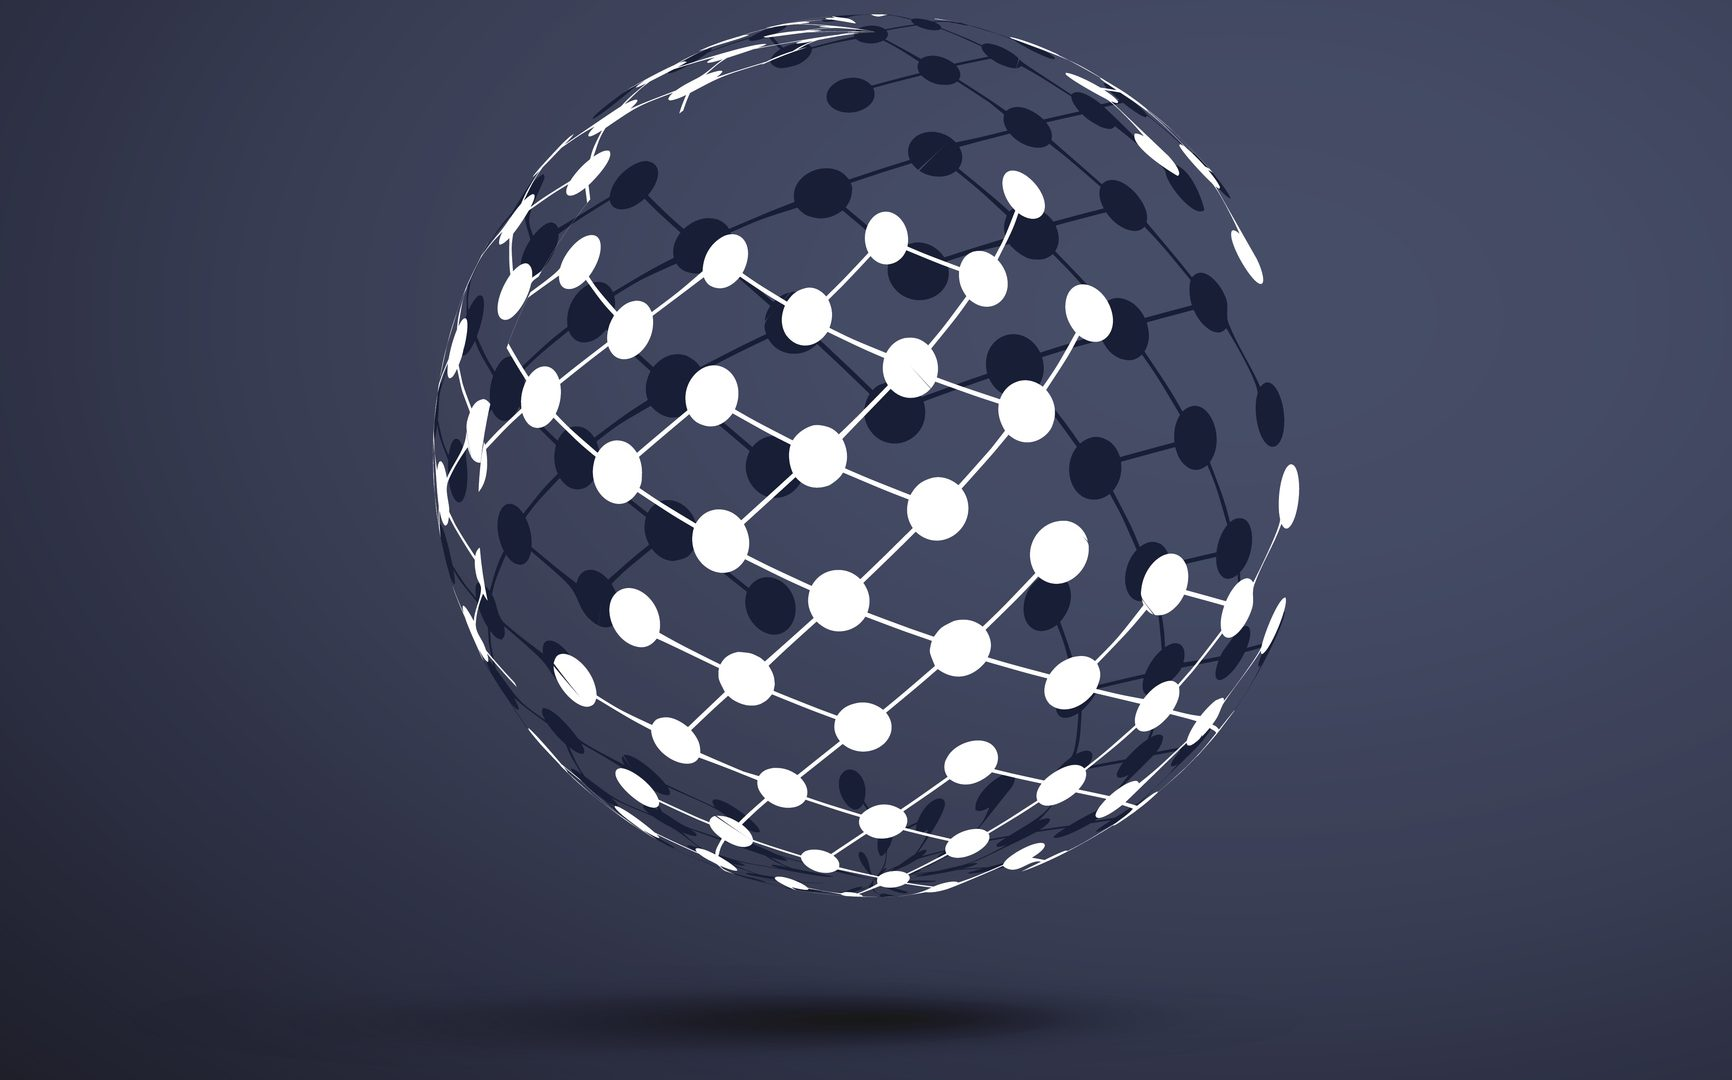 Abstract Transparent Globe Design -Global Networks or Technology Illustration Template in Editable Vector Format